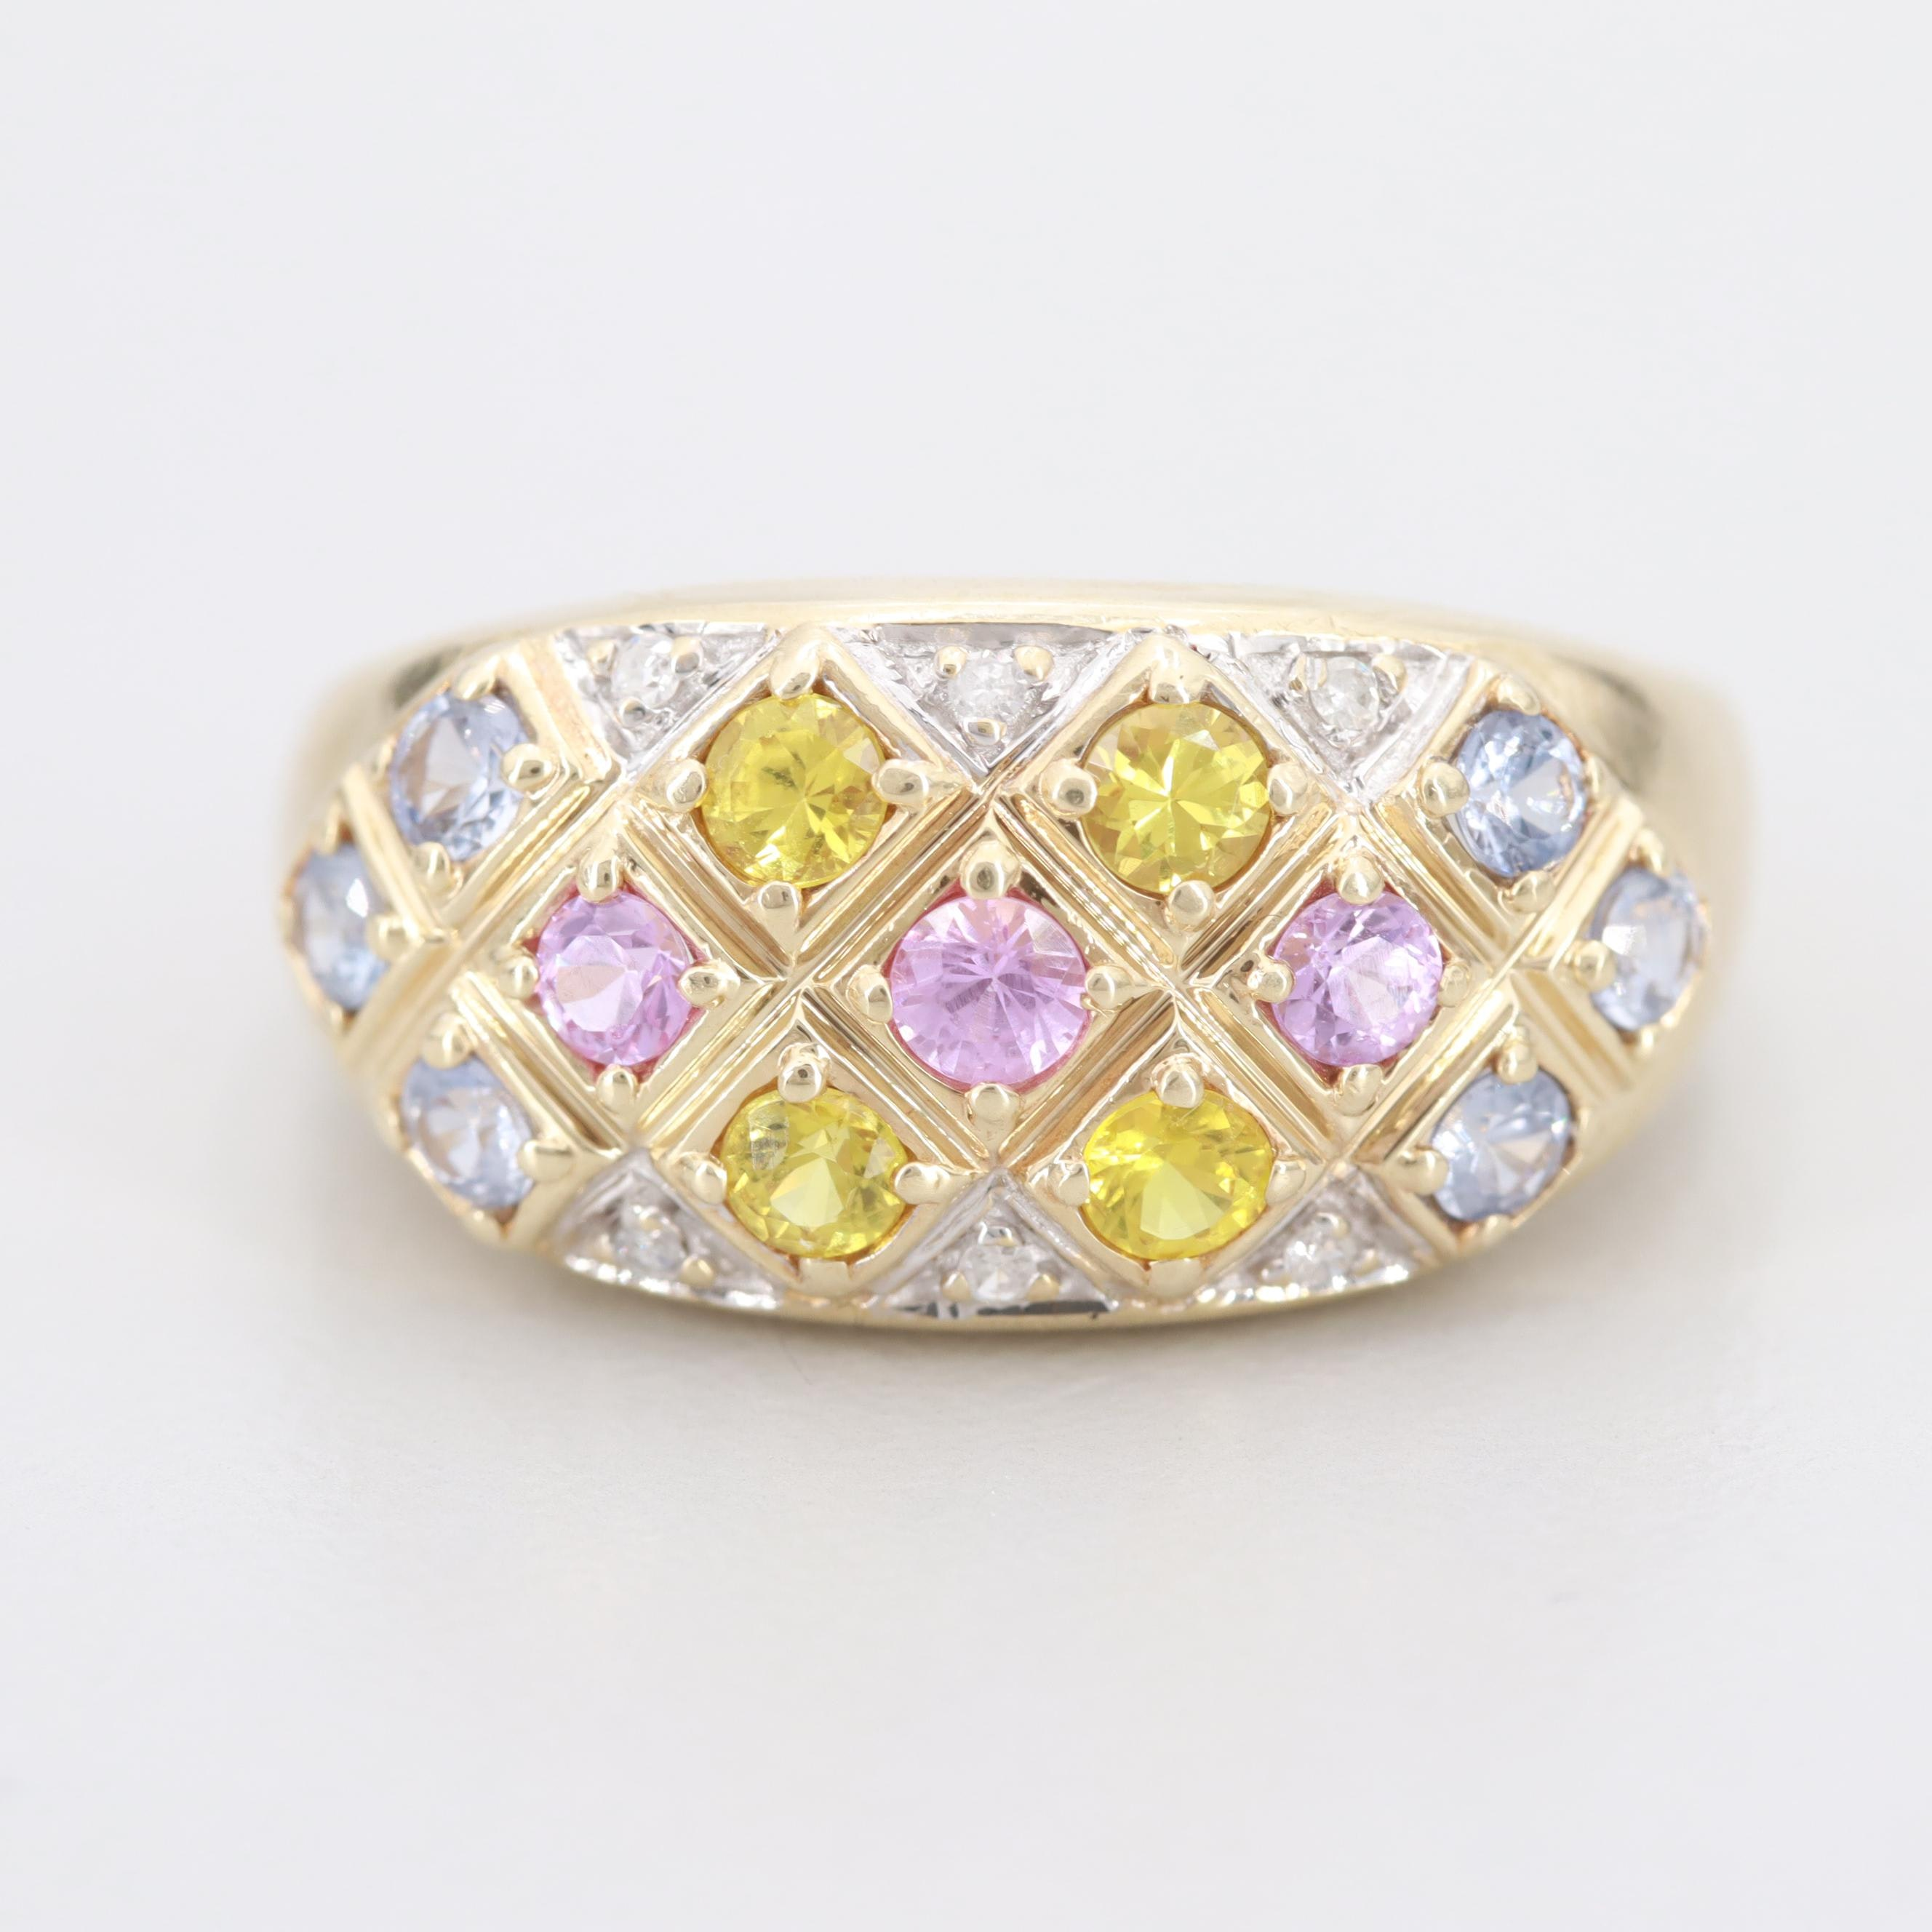 10K Yellow Gold Diamond and Multi-Colored Sapphire Ring